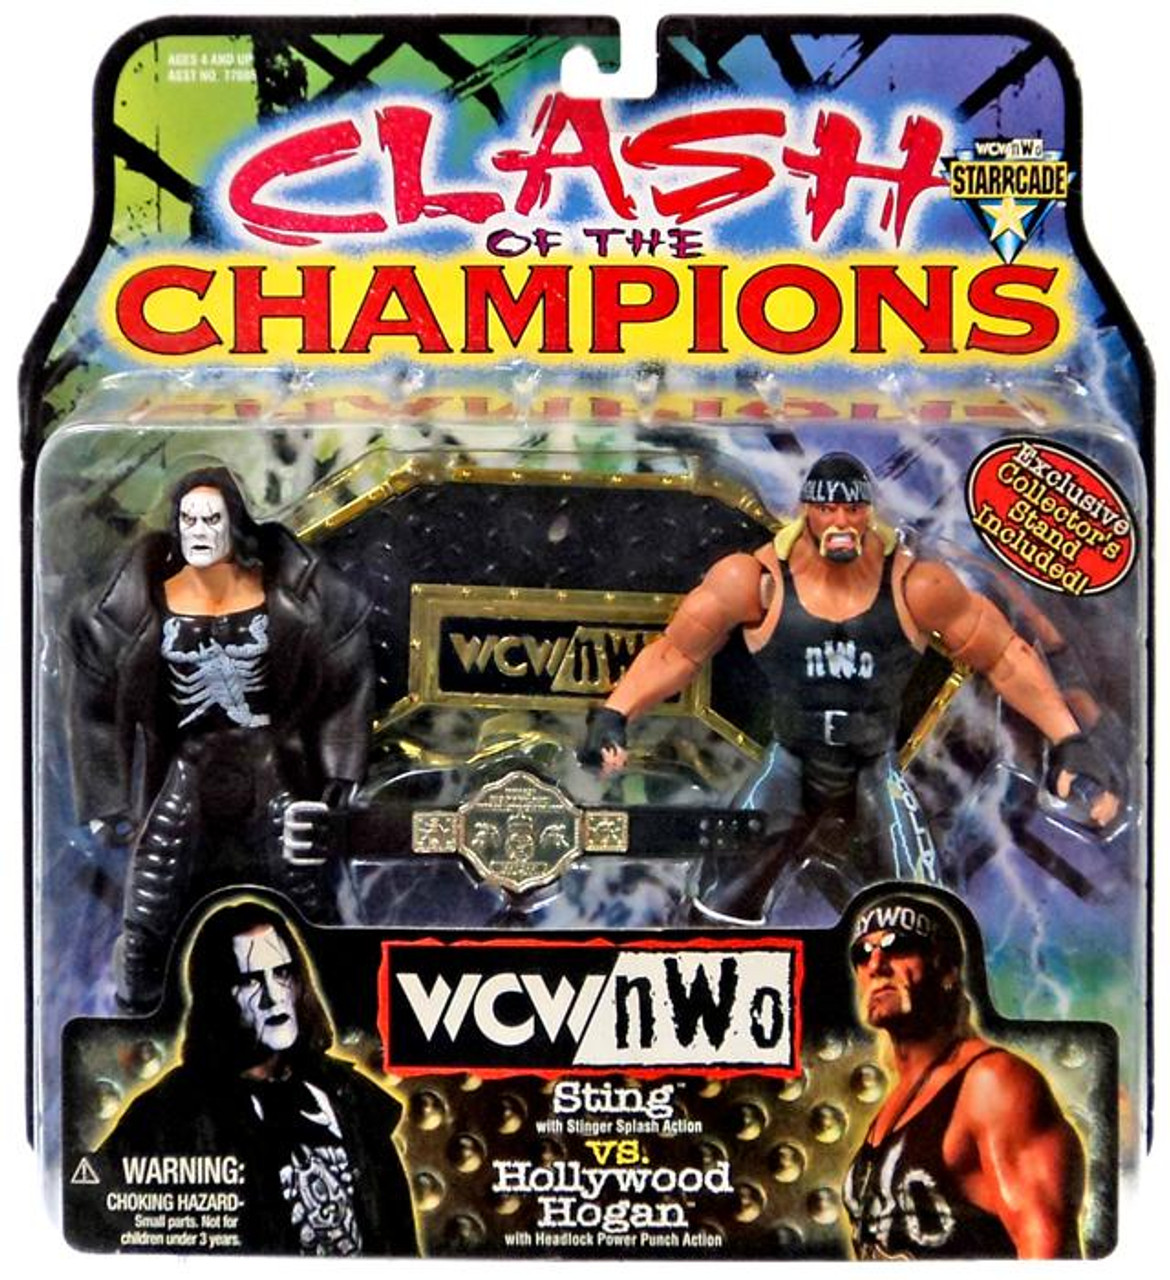 WWE Wrestling NWO Clash of the Champions Sting Vs Hollywood